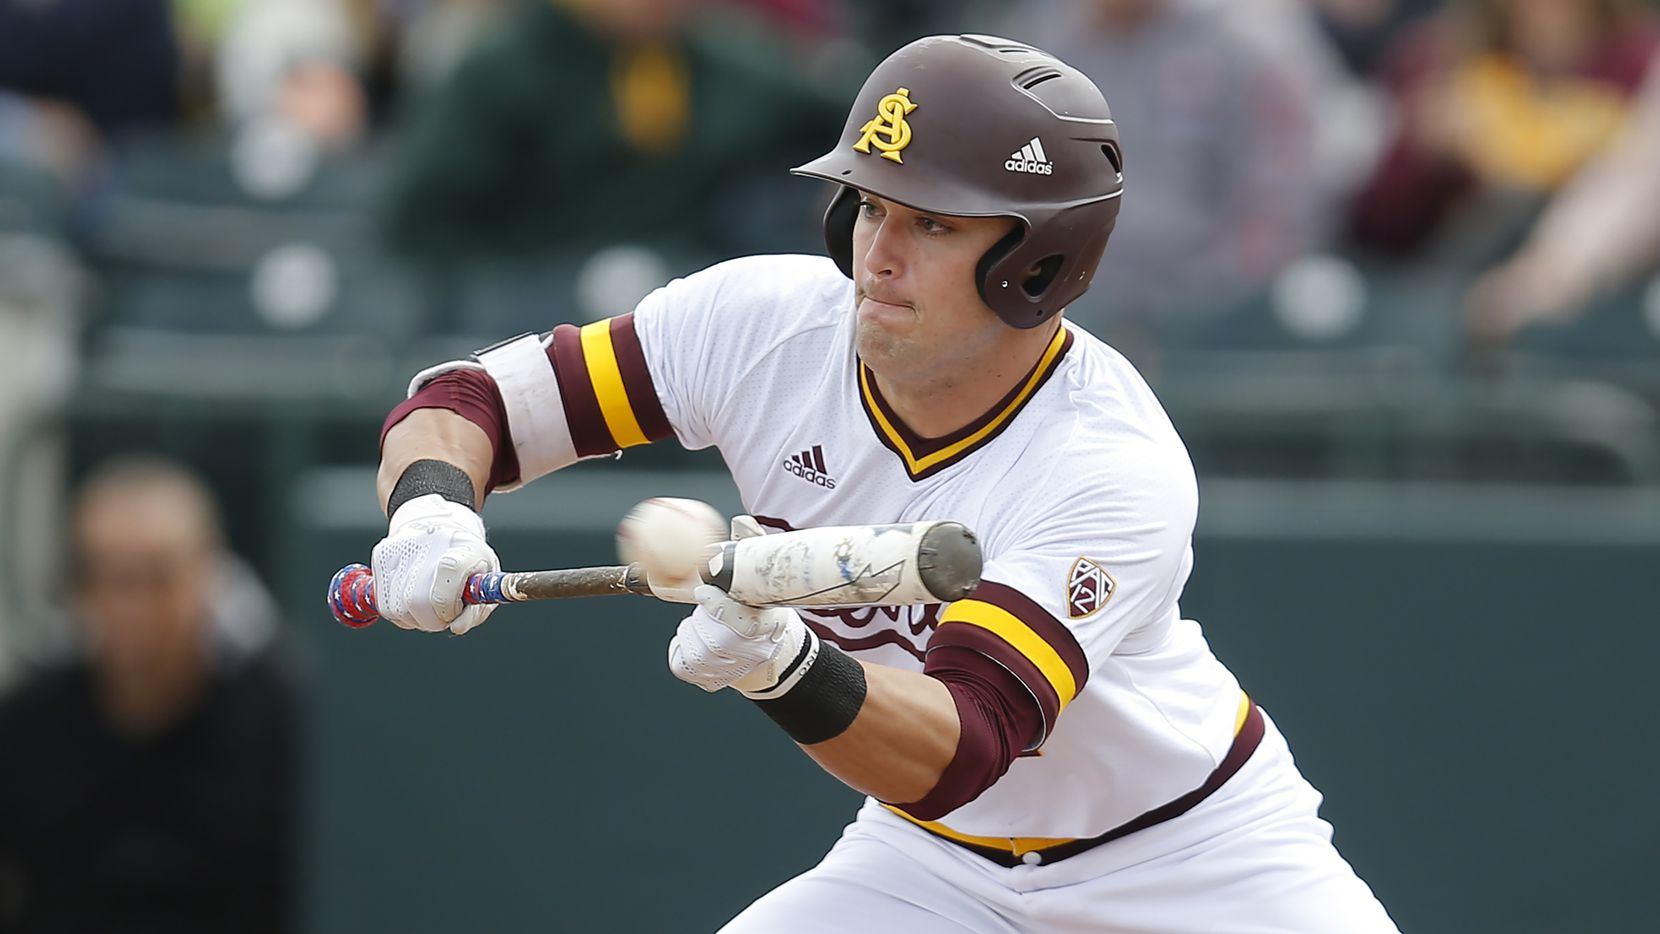 Arizona State outfielder Hunter Bishop during an NCAA college baseball game against Notre Dame, Sunday, Feb. 17, 2019, in Phoenix. (AP Photo/Rick Scuteri)